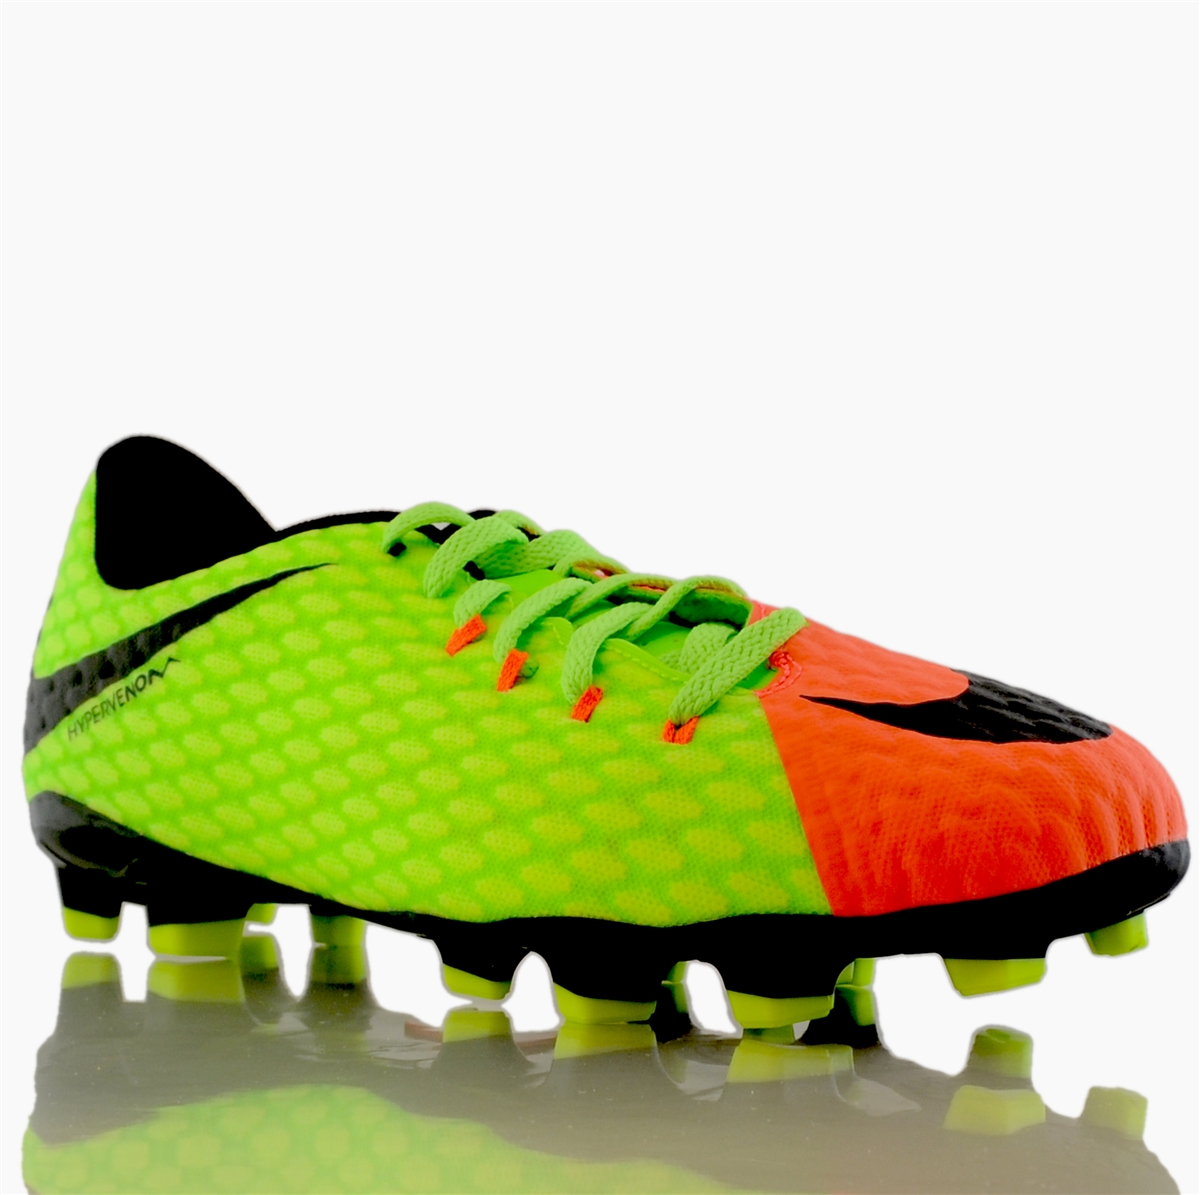 527ccf18d Nike Hypervenom Phelon III FG Youth Soccer Cleats (Electric Green ...